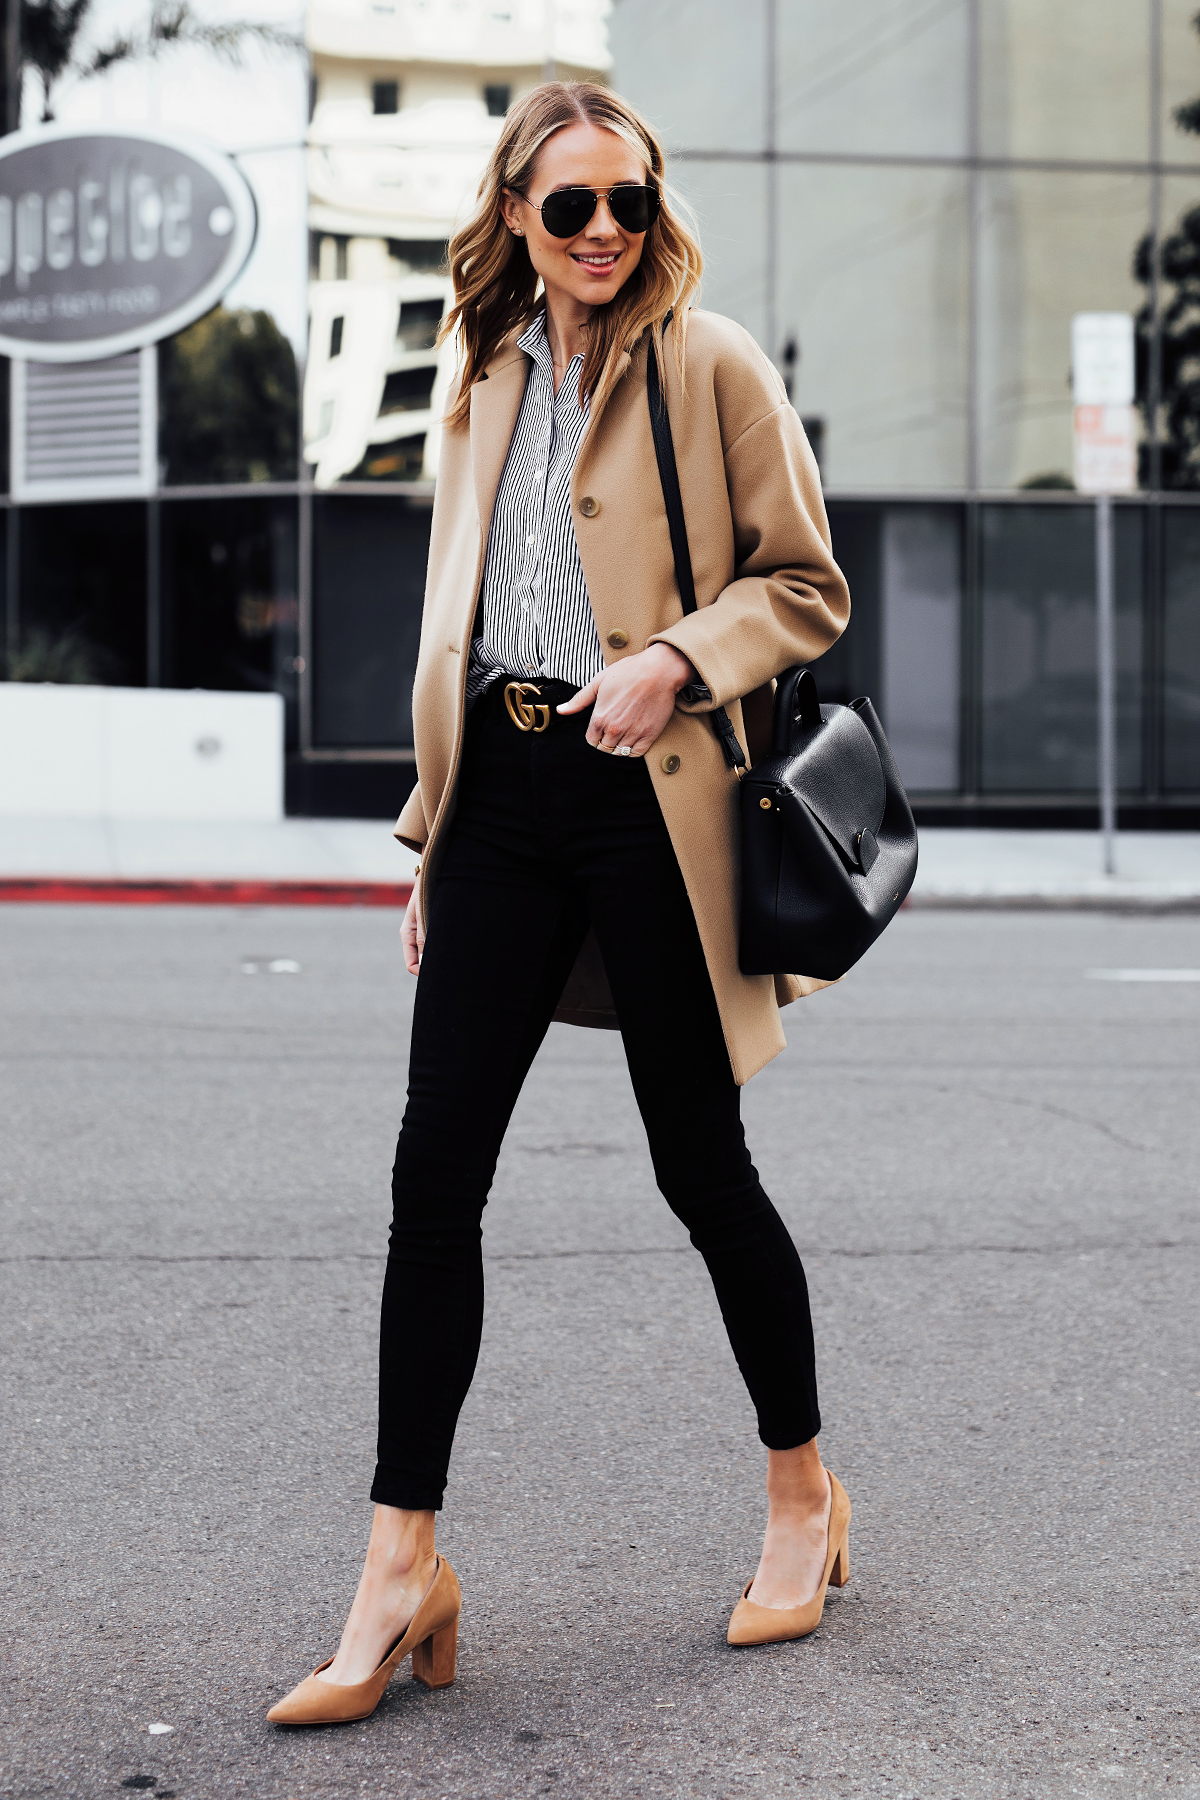 Blonde Woman Wearing Everlane Camel Coat Black White Stripe Button Down Shirt Black Skinny Jeans Black Gucci Belt Tan Pumps Polene Numero Un Black Handbag Fashion Jackson San Diego Fashion Blogger Street Style